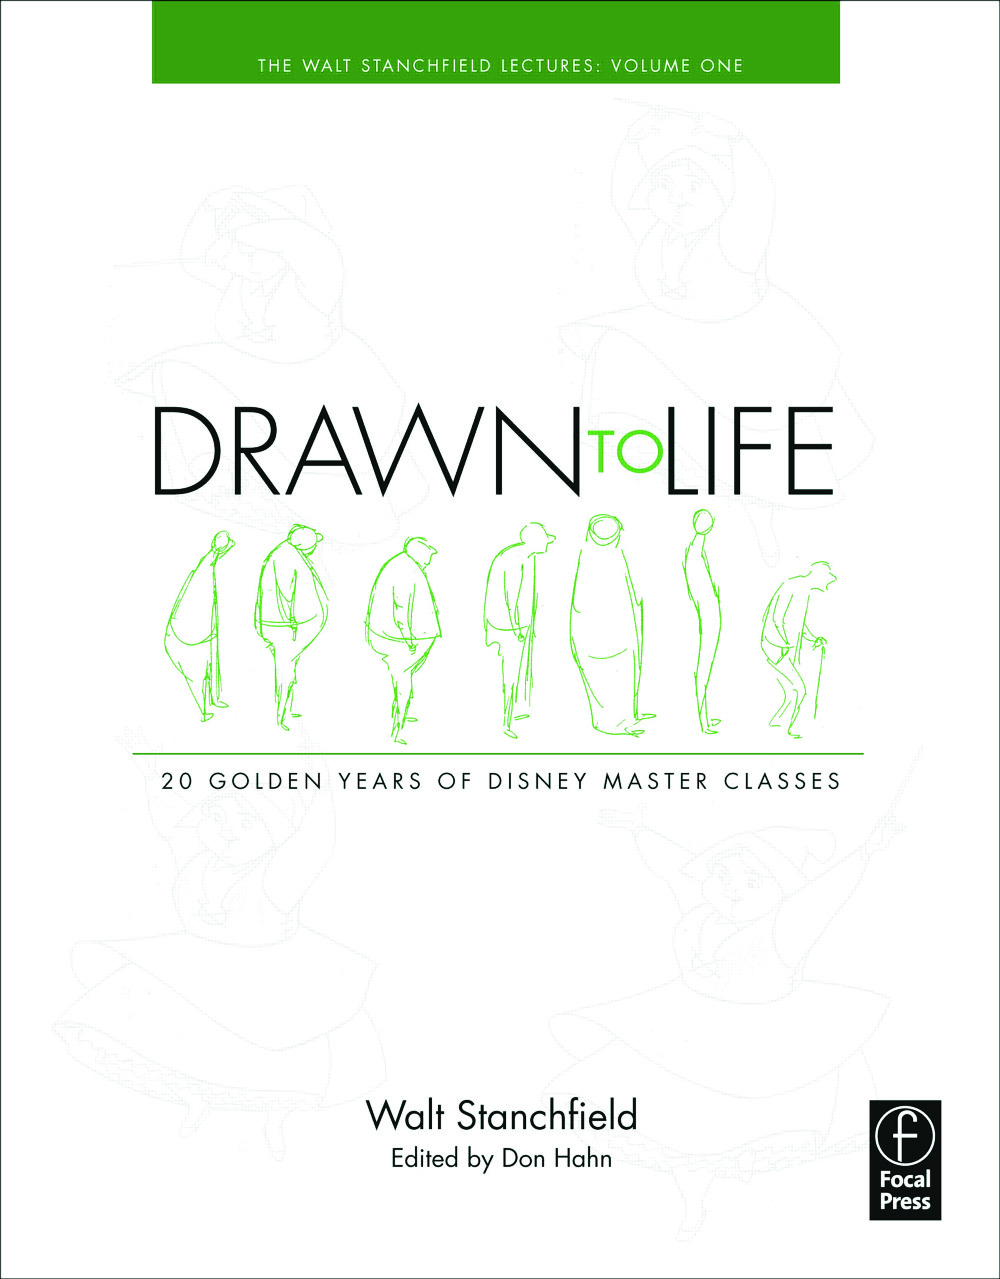 Drawn to Life: 20 Golden Years of Disney Master Classes: Volume 1: The Walt Stanchfield Lectures, 1st Edition (Paperback) book cover